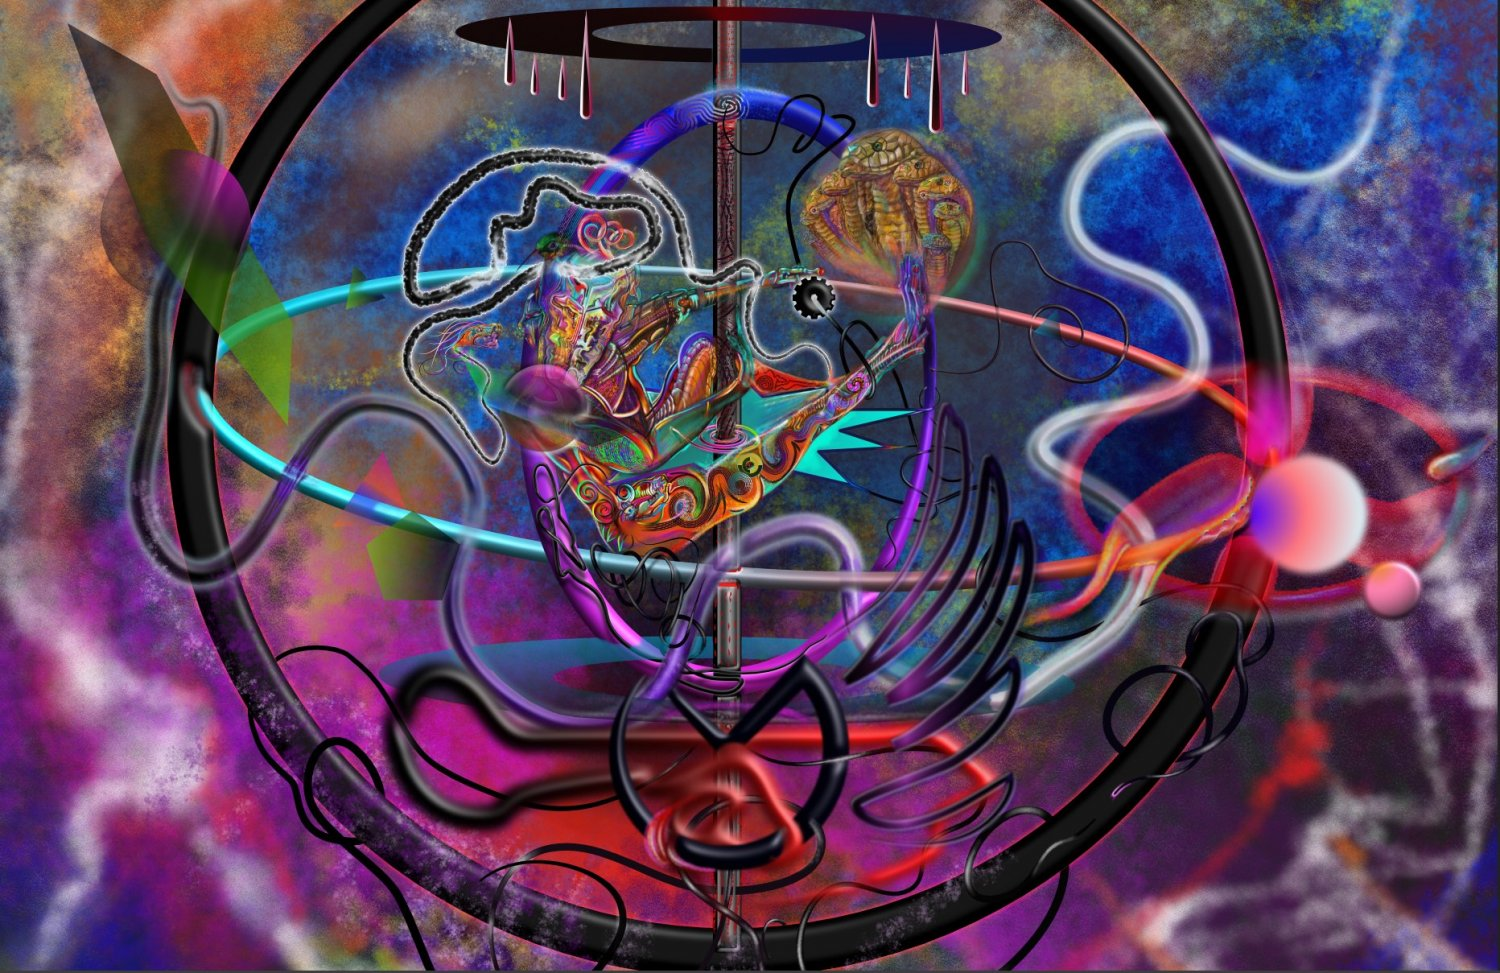 Number_two_Ahura_Mazda_device_conjuered_up_also_as_history_of_all_gods_employed_for_flight_by_doz_4_5_2020_evening_artwork_session.jpg